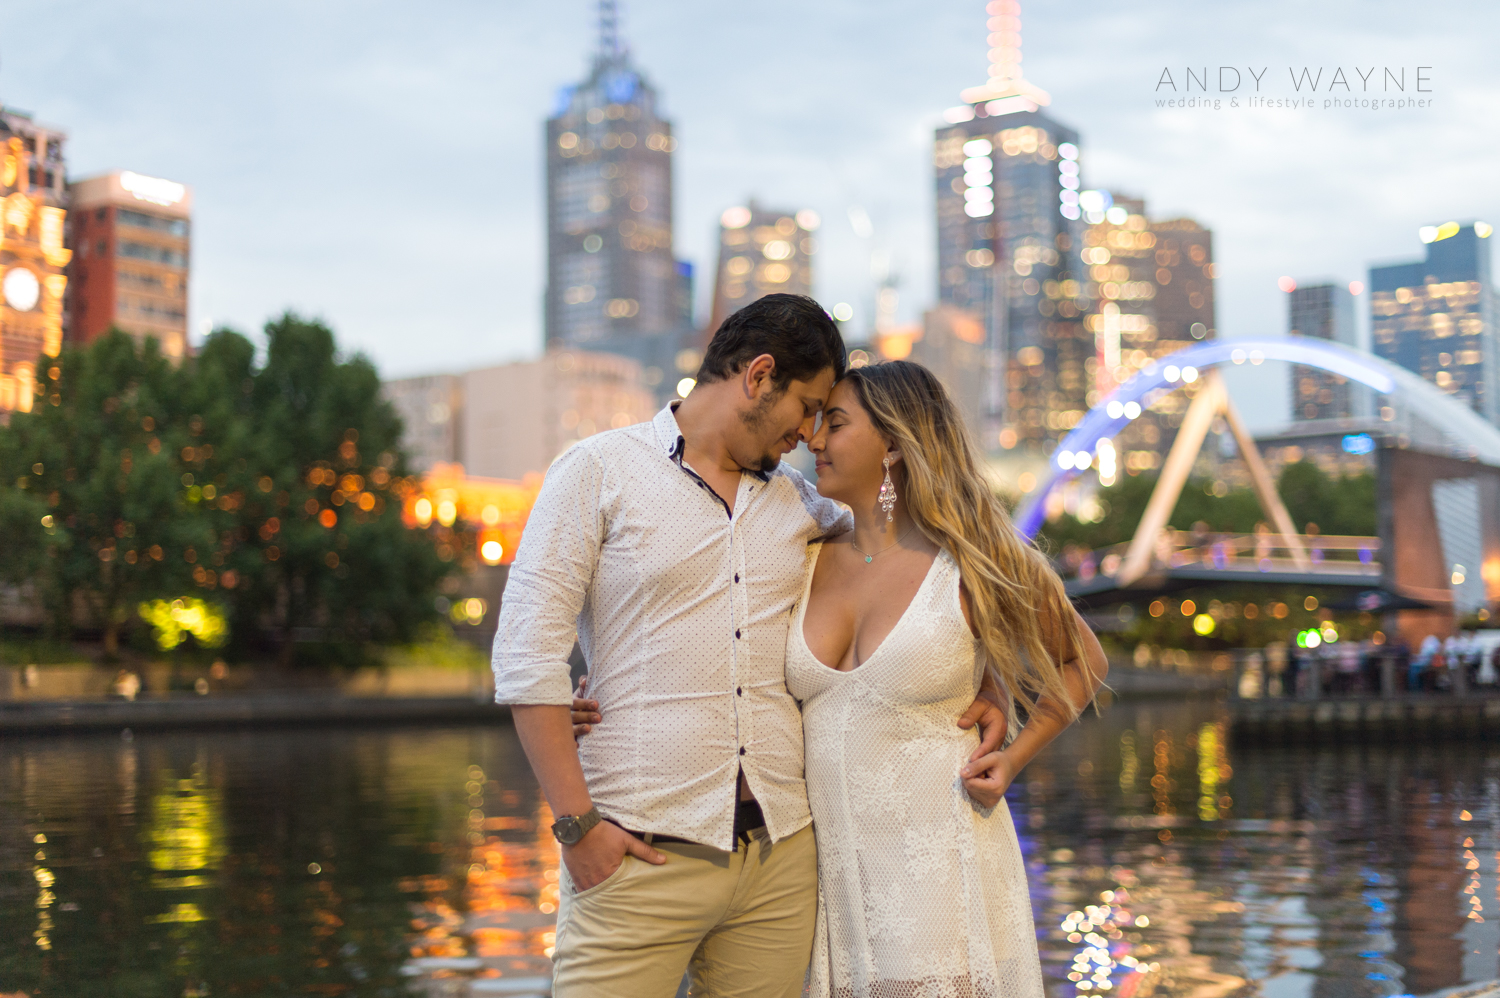 melbourne australia yarra river andy wayne photographer engagement shoot-76.jpg